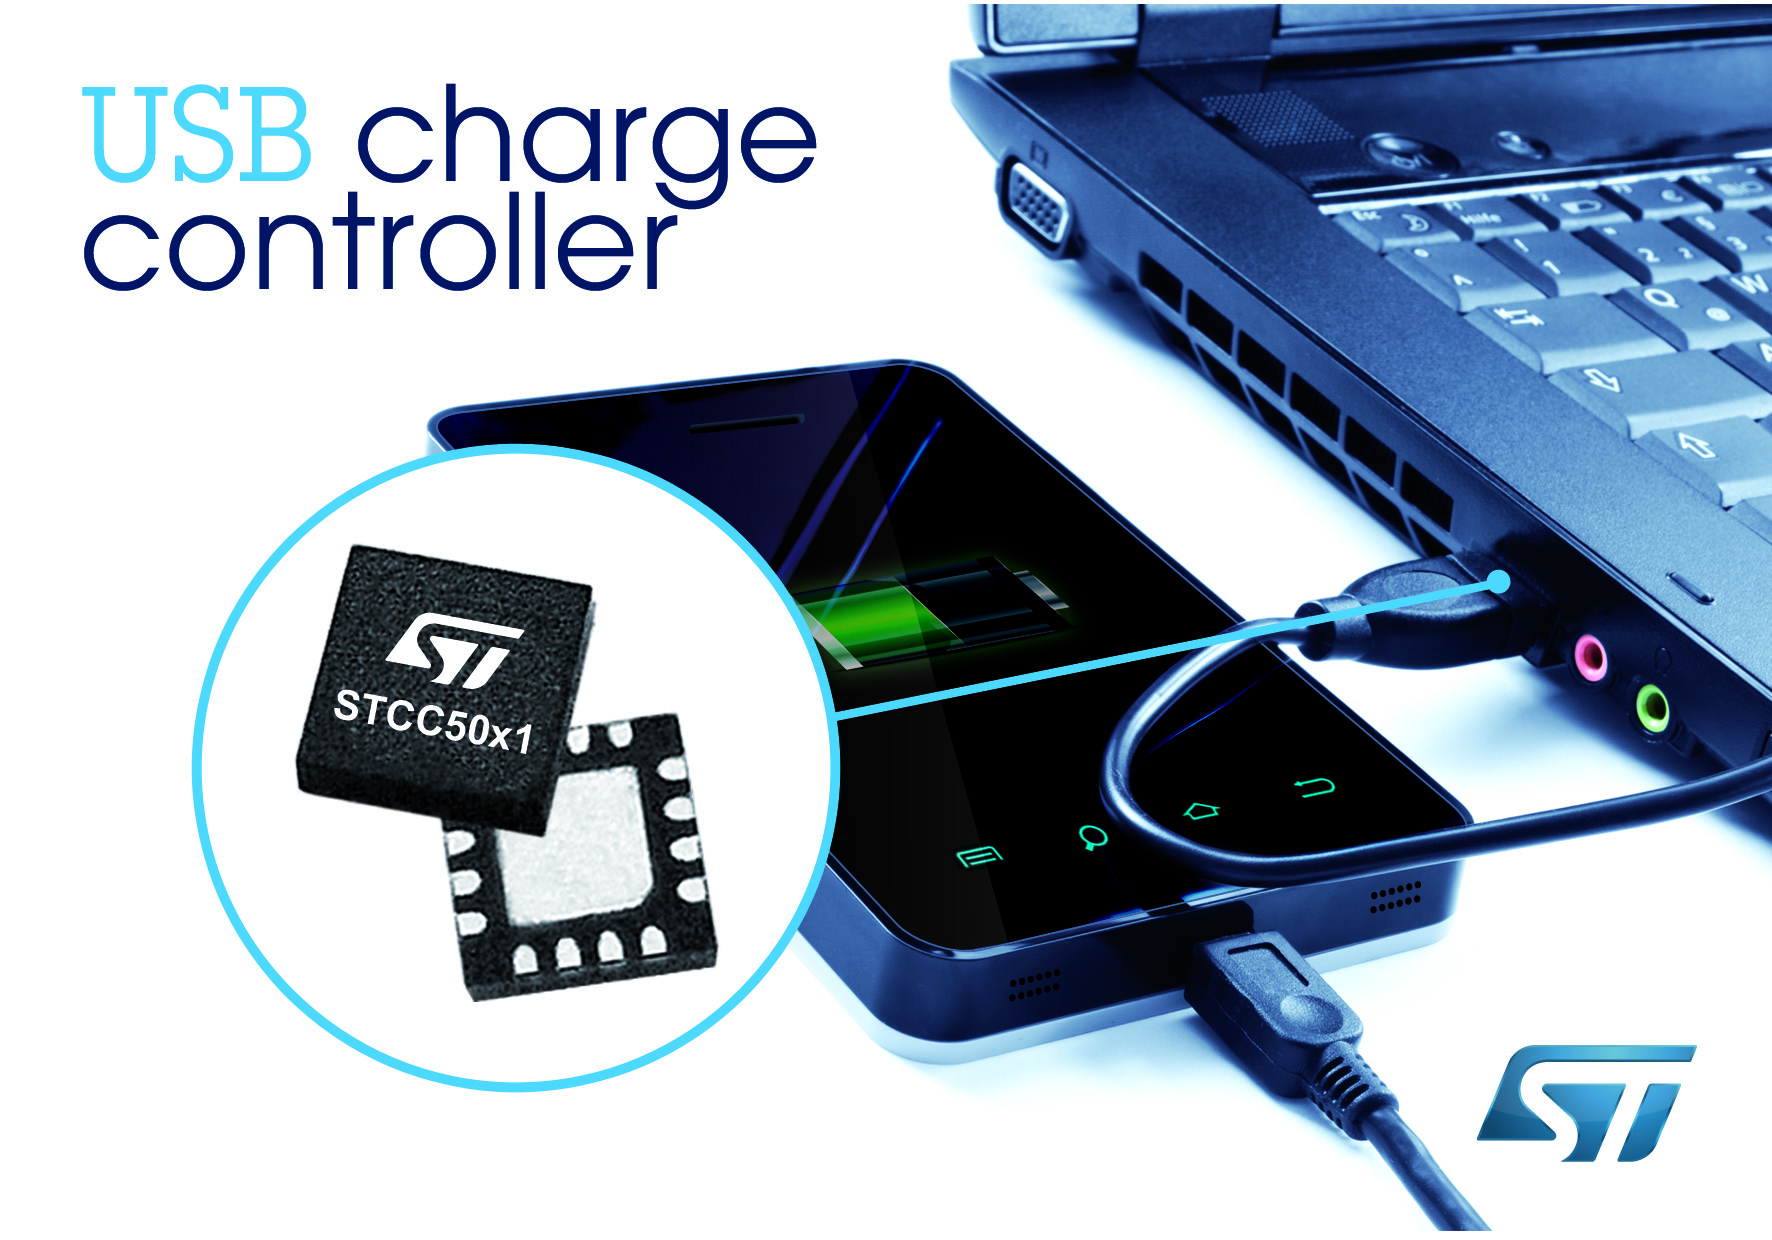 Charging Mobile Devices from Shutdown PCs Becomes Reality with Unique USB Chips